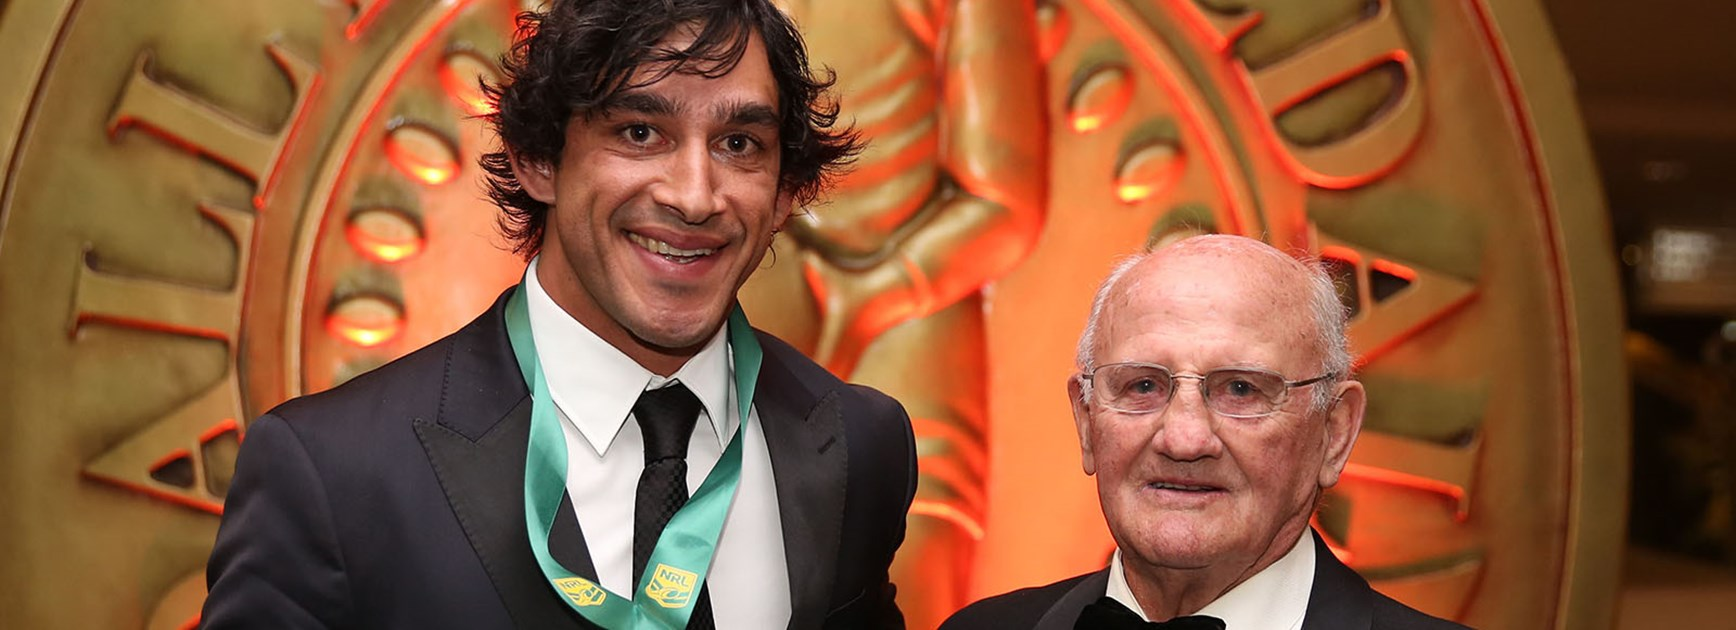 2014 Provan Summons Medal winner Johnathan Thurston with Arthur Summons at the Dally M Medal night.